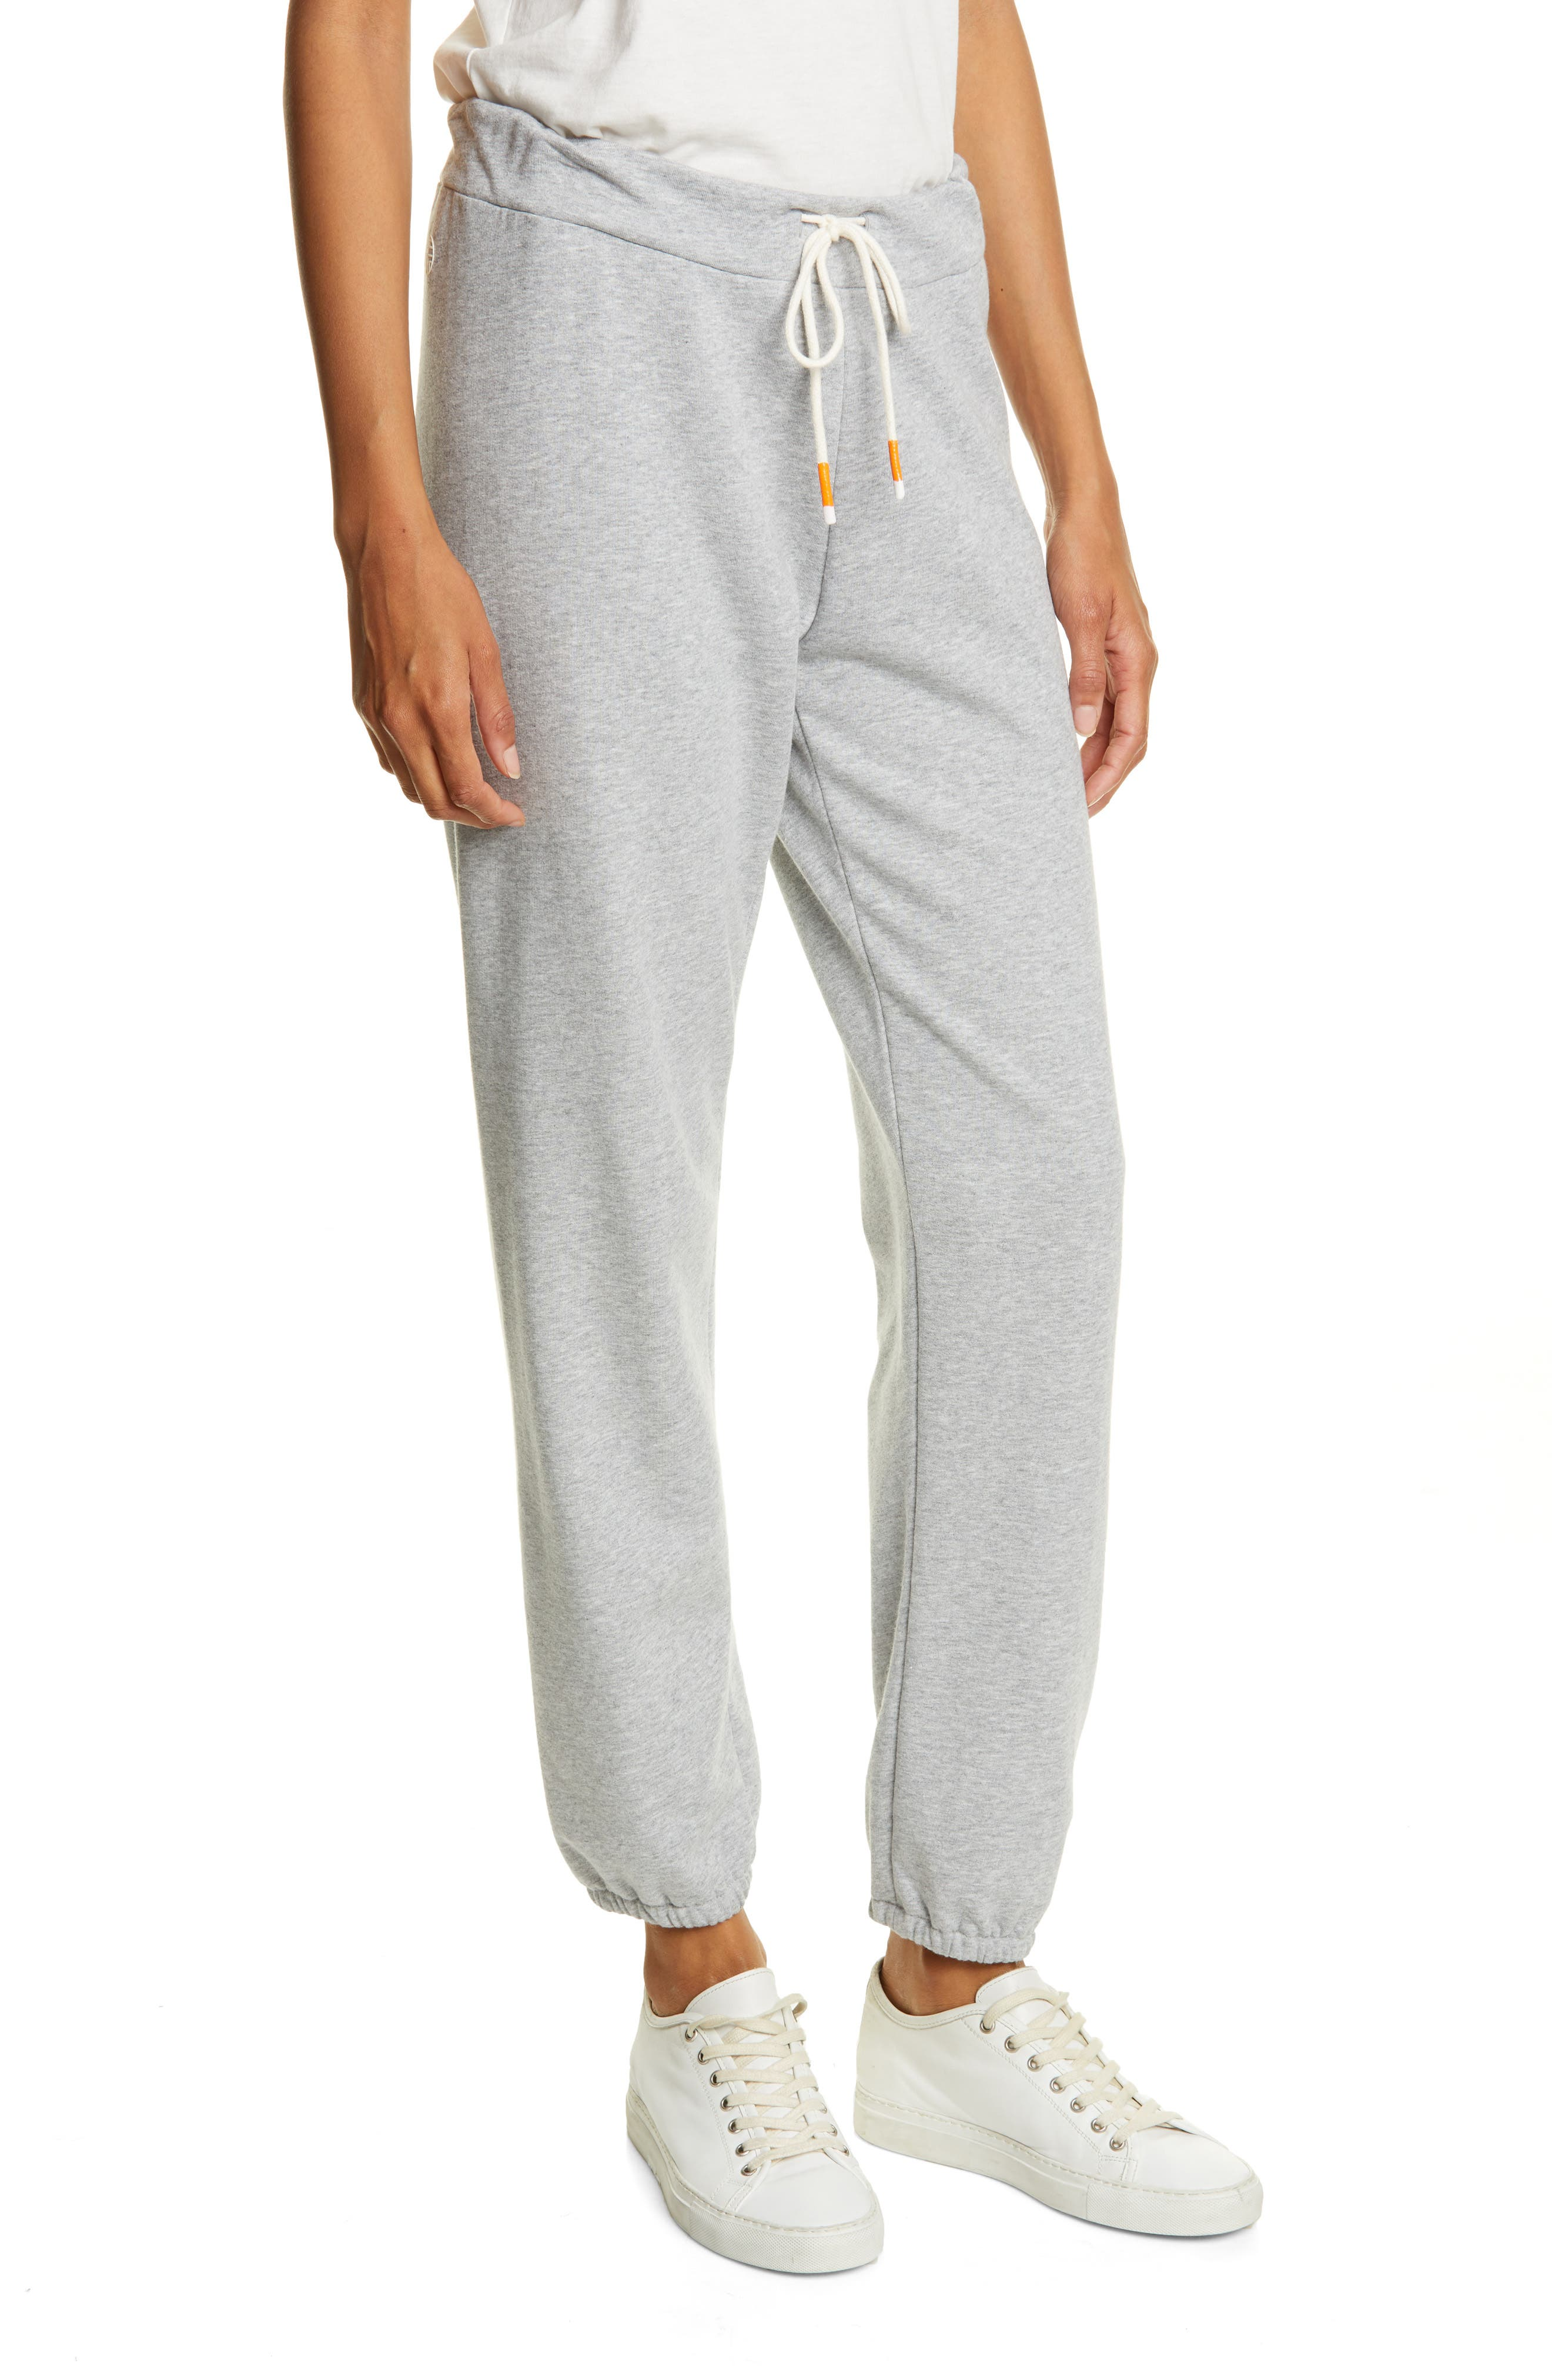 Women's Tory Sport French Terry Sweatpants